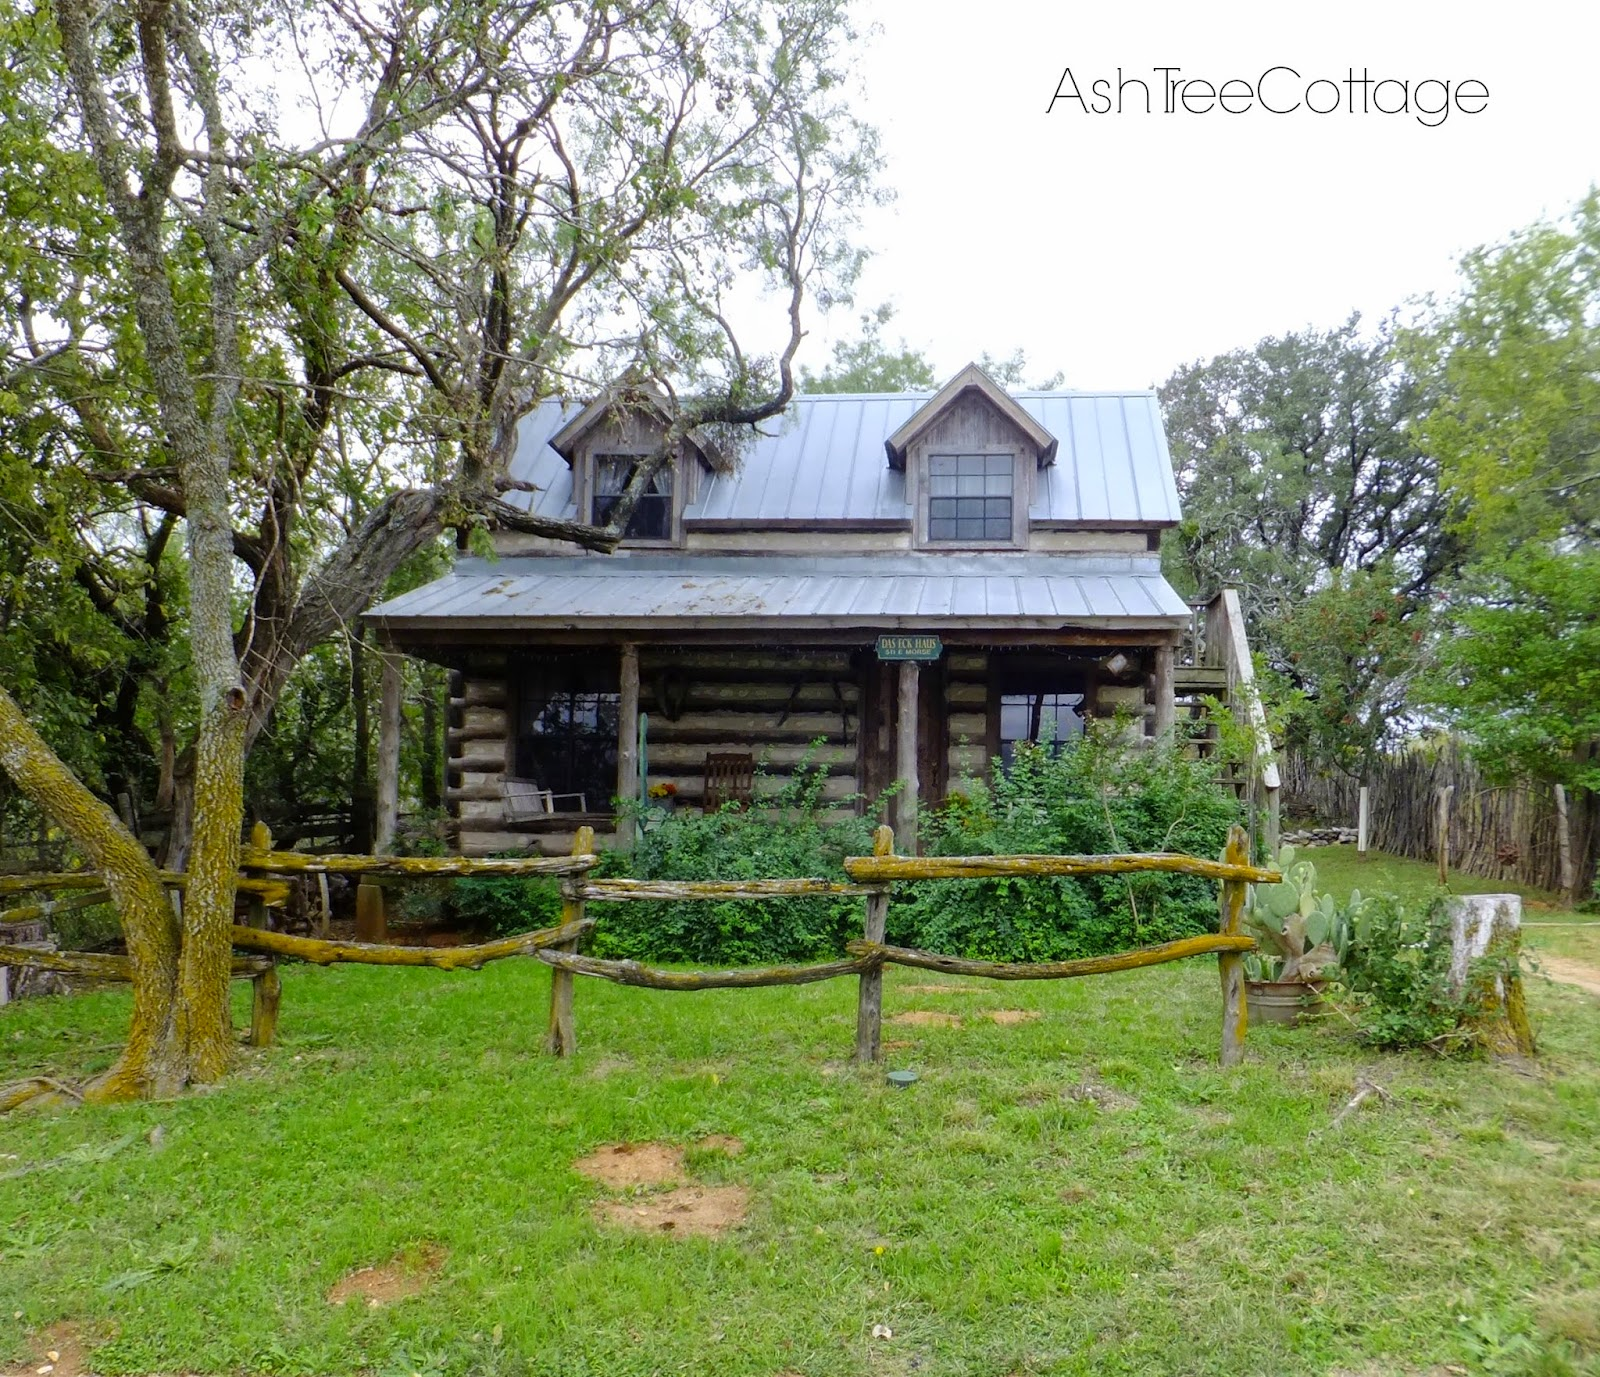 Ash tree cottage bentley 39 s texas hill country cottage tour for Texas cottage